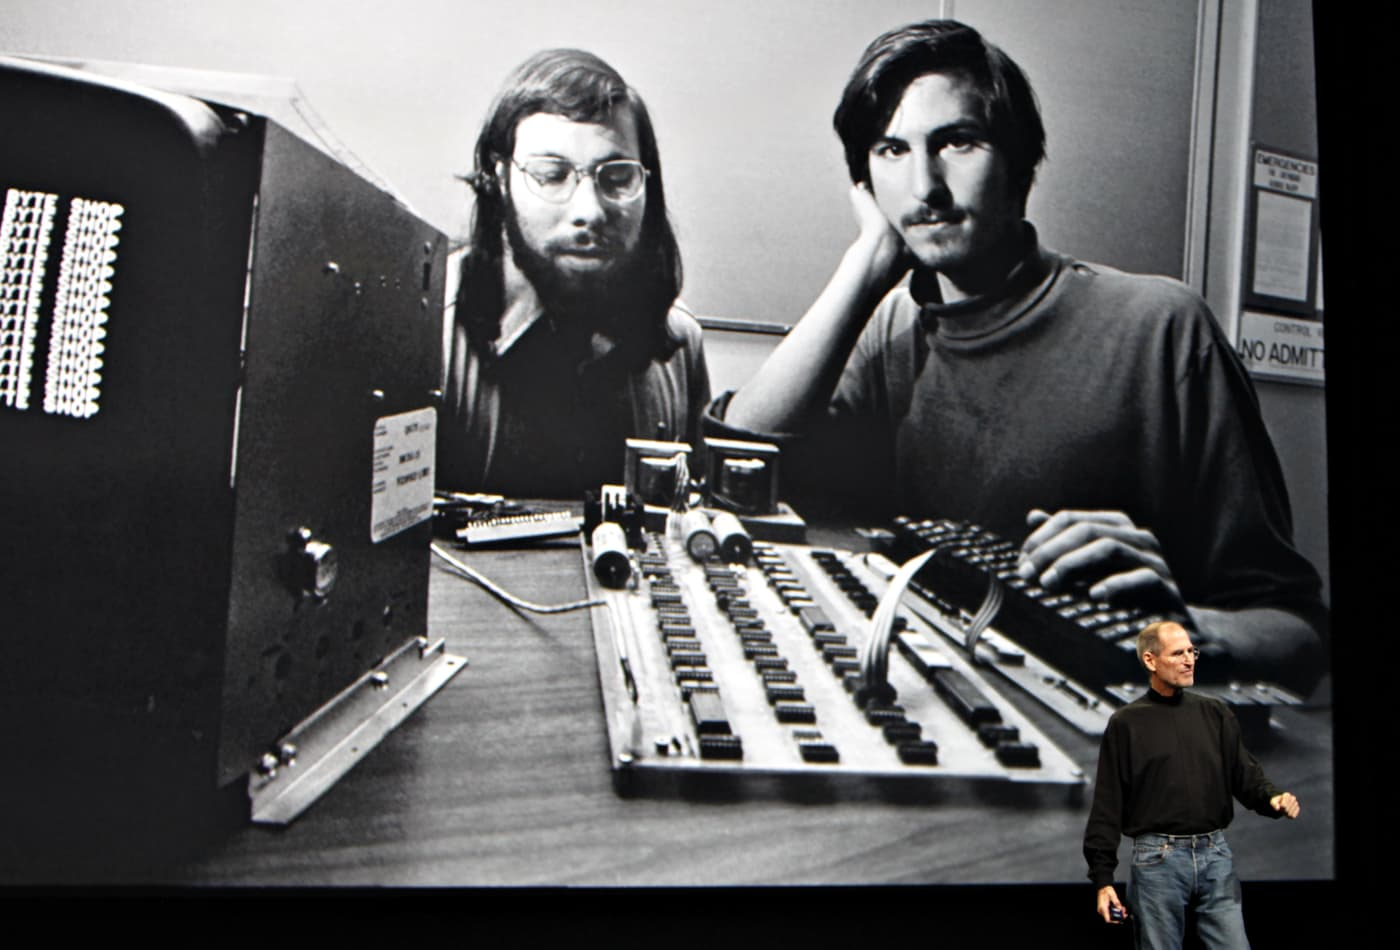 Apple's first employee shares lessons from working with Steve Jobs Images may be subject to copyright. Learn More